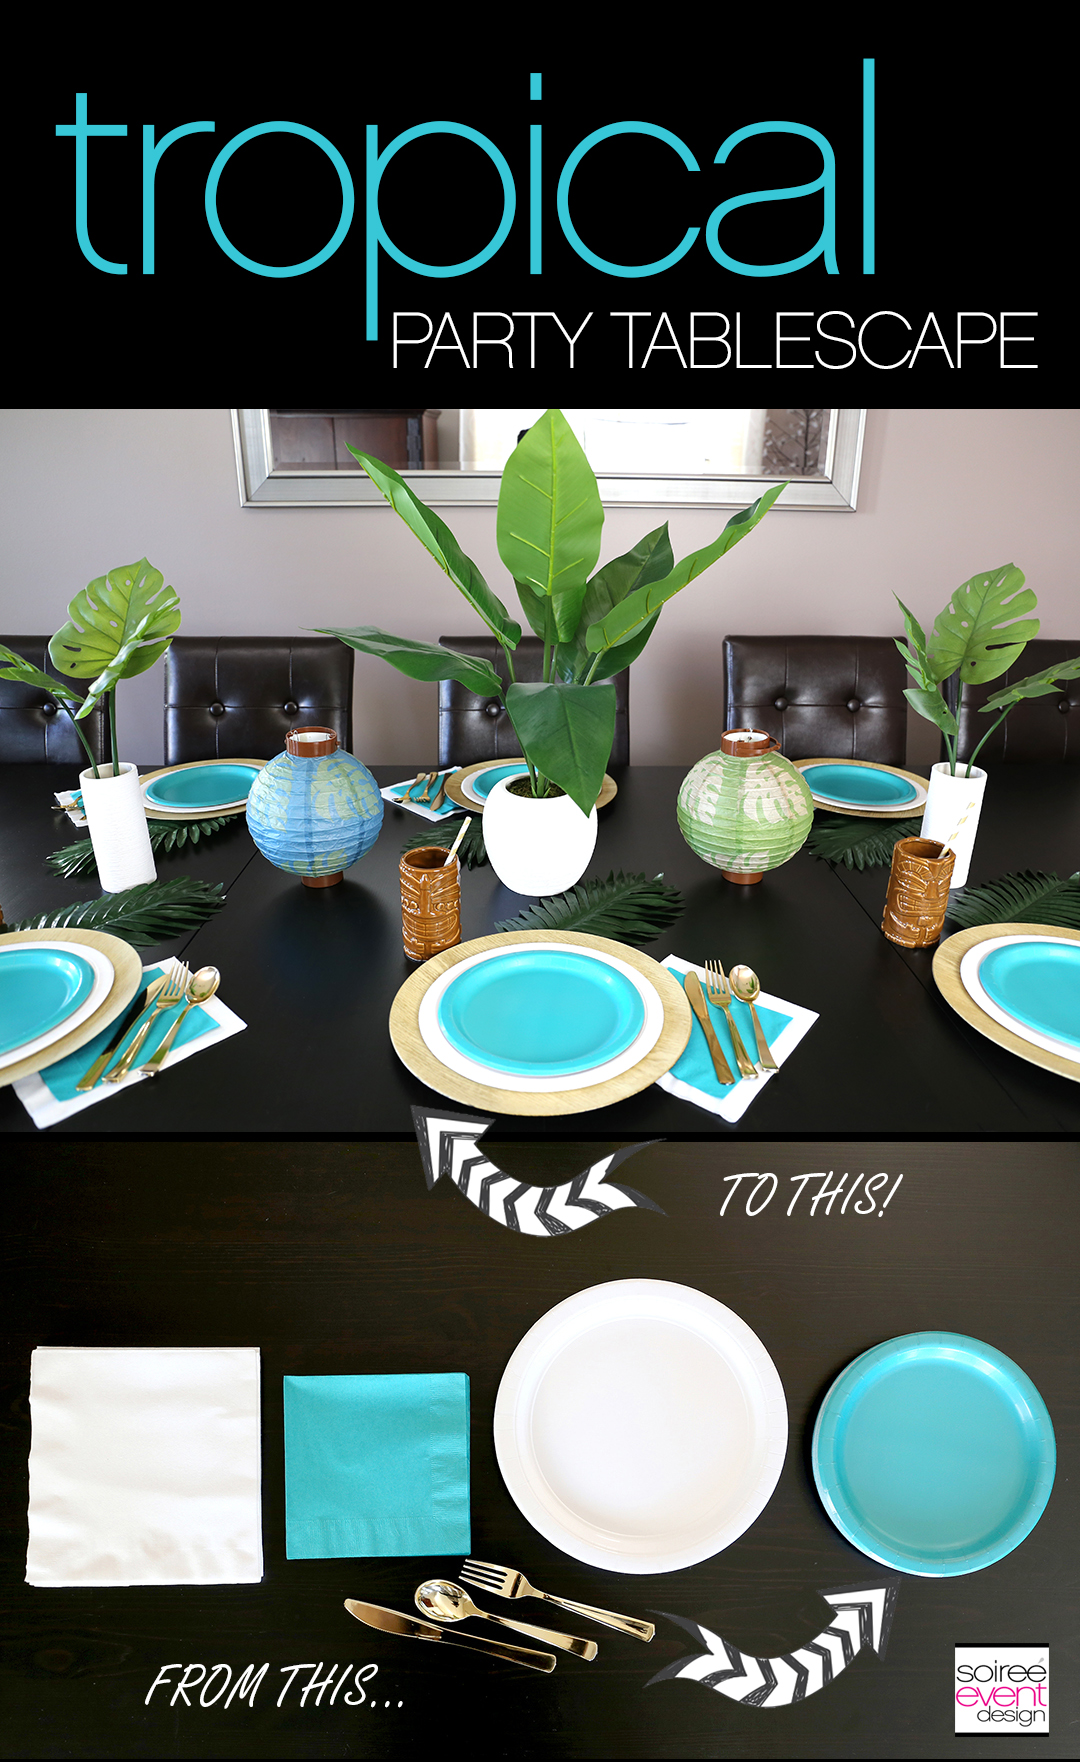 Tropical Party Ideas - Tropical Party Tablescape